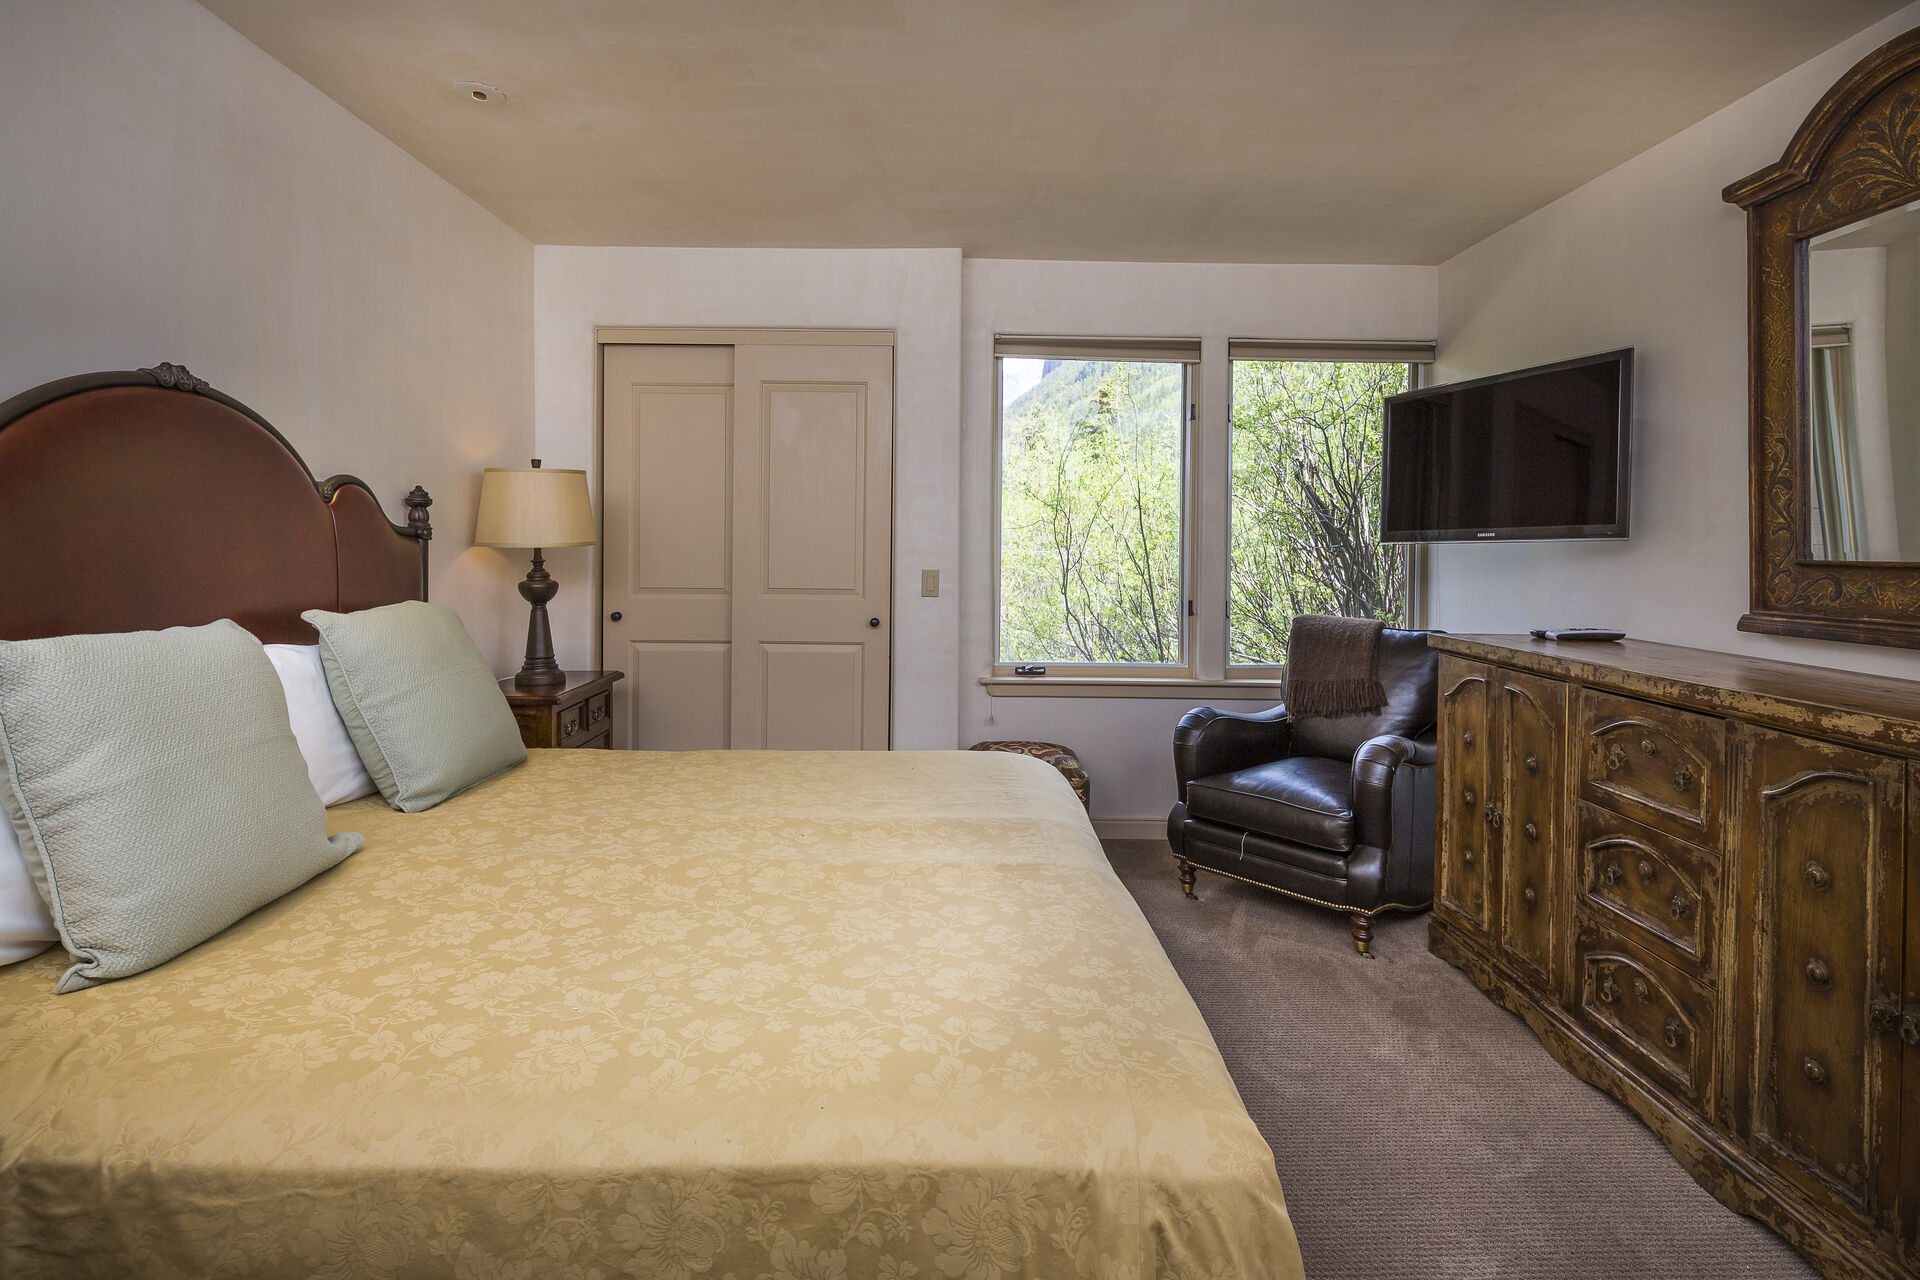 Vanity dresser, wall-mounted TV, and armchair by a large bed in a bedroom of this home.